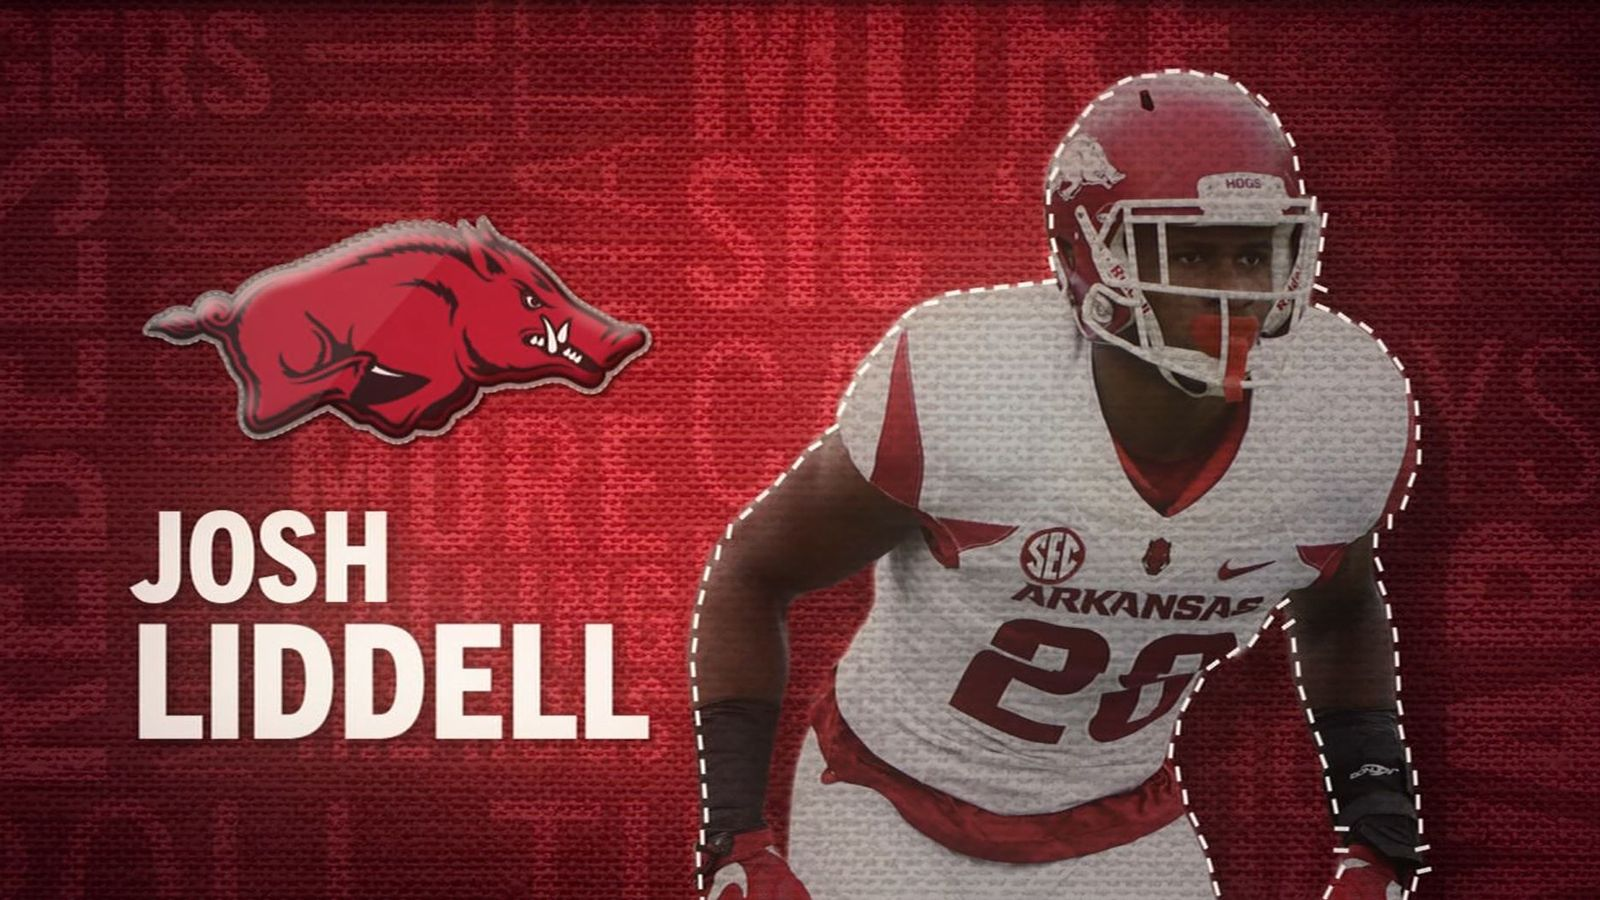 I am the SEC: Arkansas' Josh Liddell